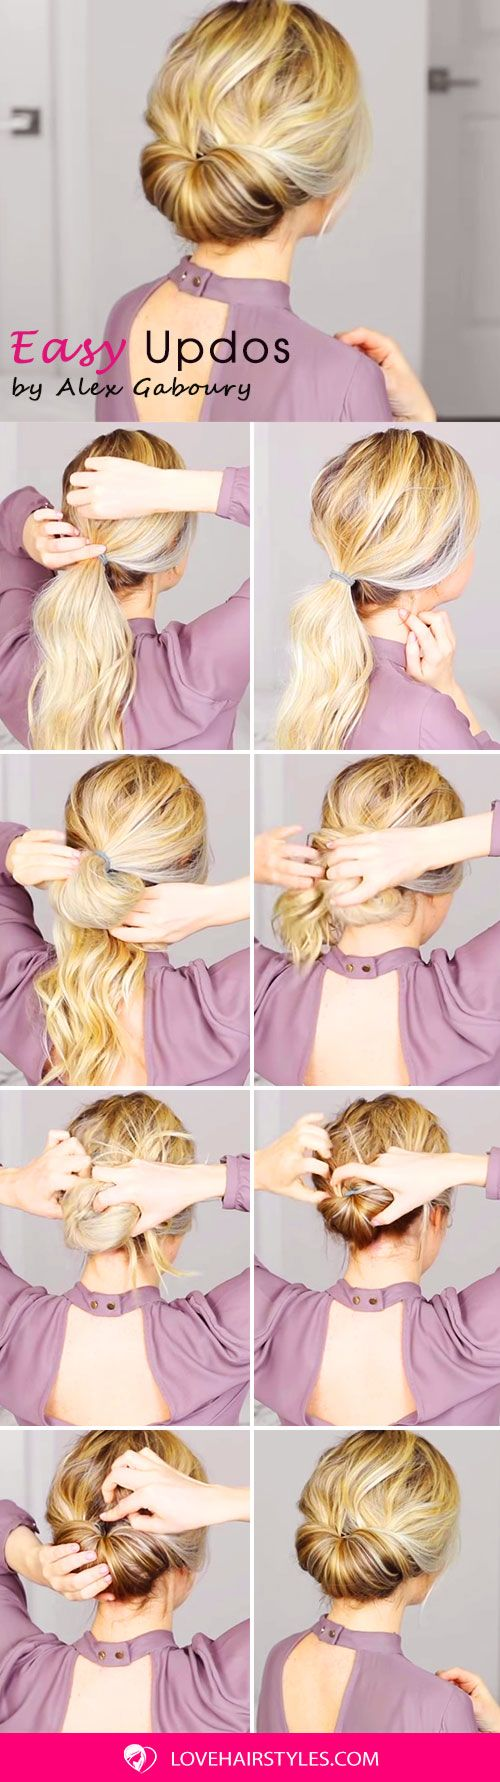 How To: Beautiful And Super Simple Updo For Long Hair #updo #bun #hairtutorial